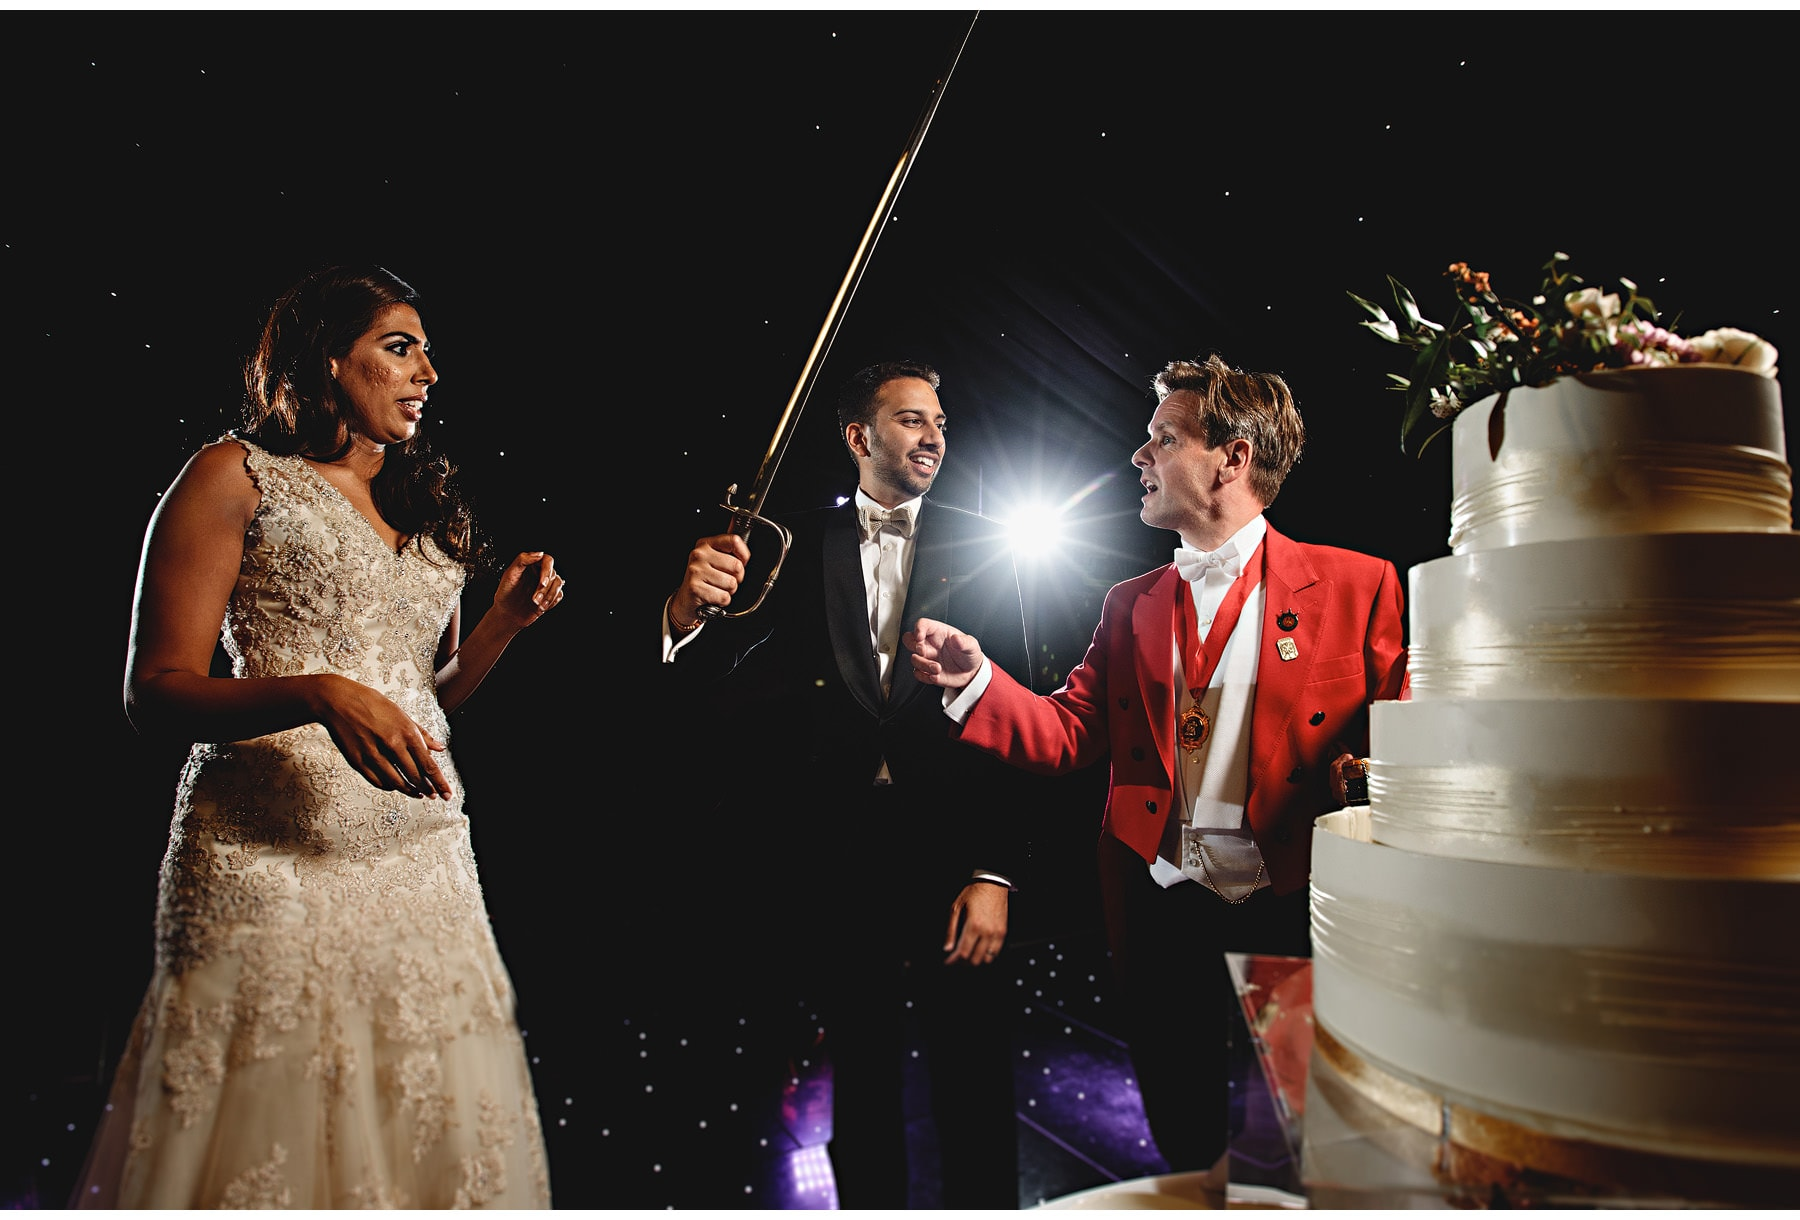 the bride & groom cut their cake with a sword